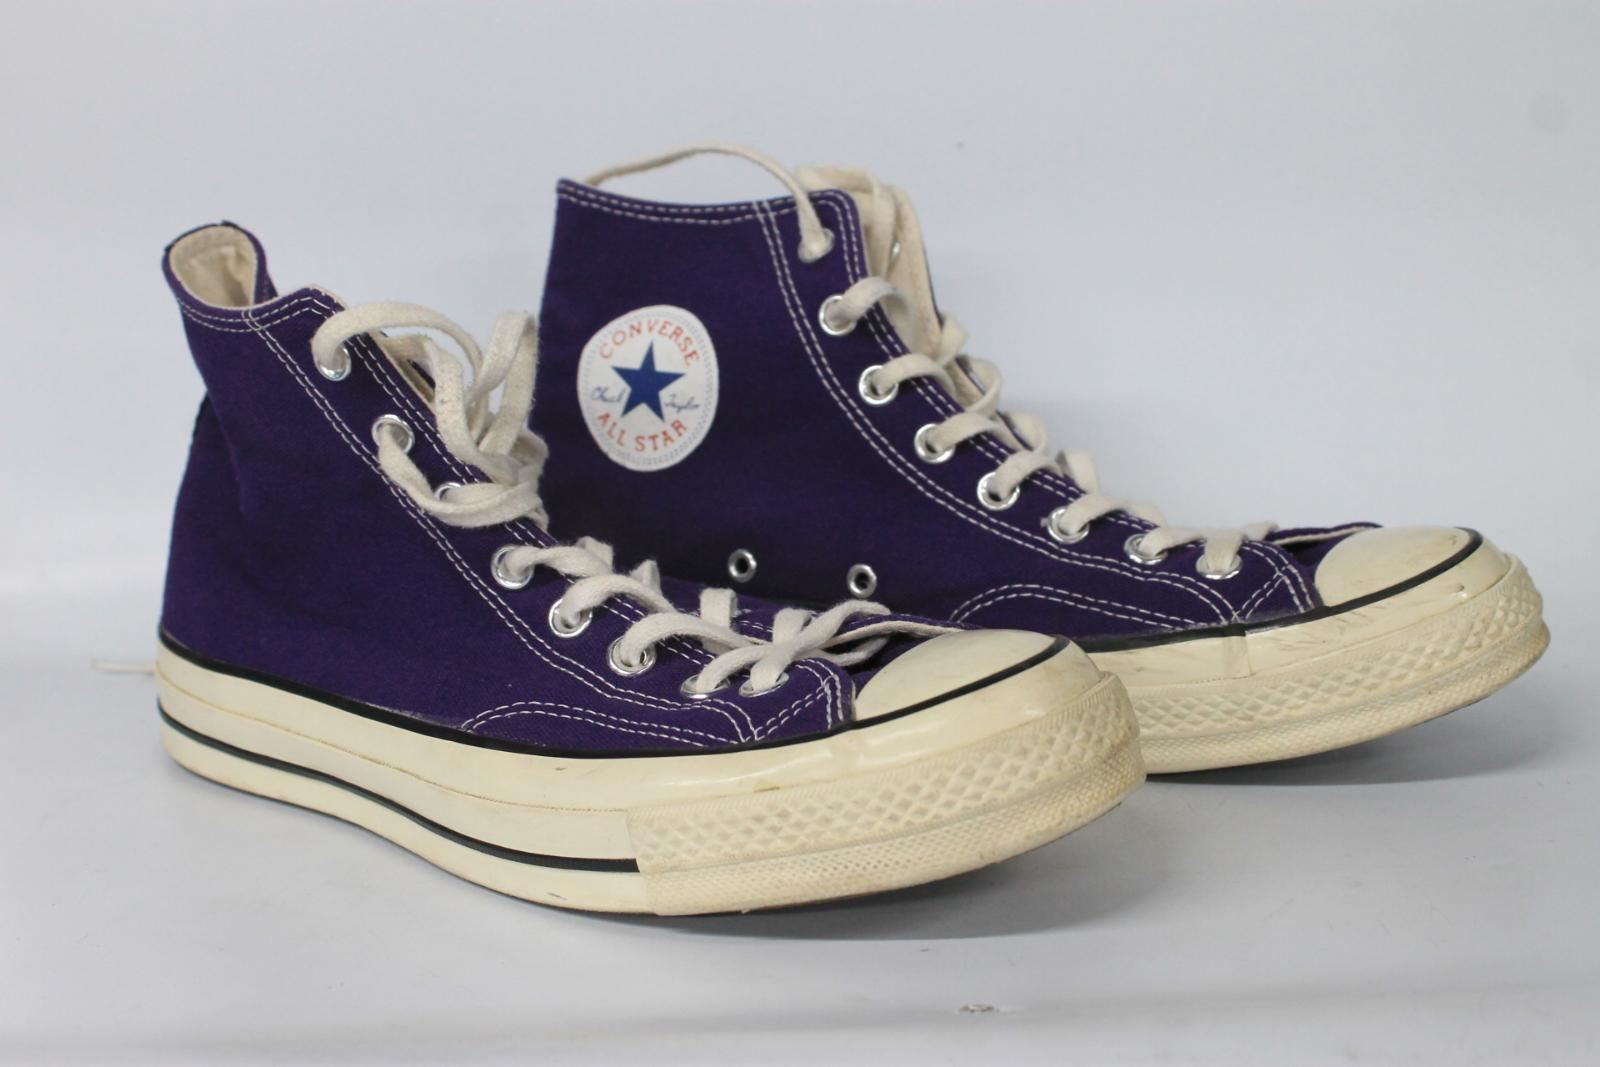 e68484a6015c CONVERSE All Star Chuck Taylor Men s Purple Canvas Lace-Up Hi-Top Trainers  UK9 nwswpl112-Men s Trainers